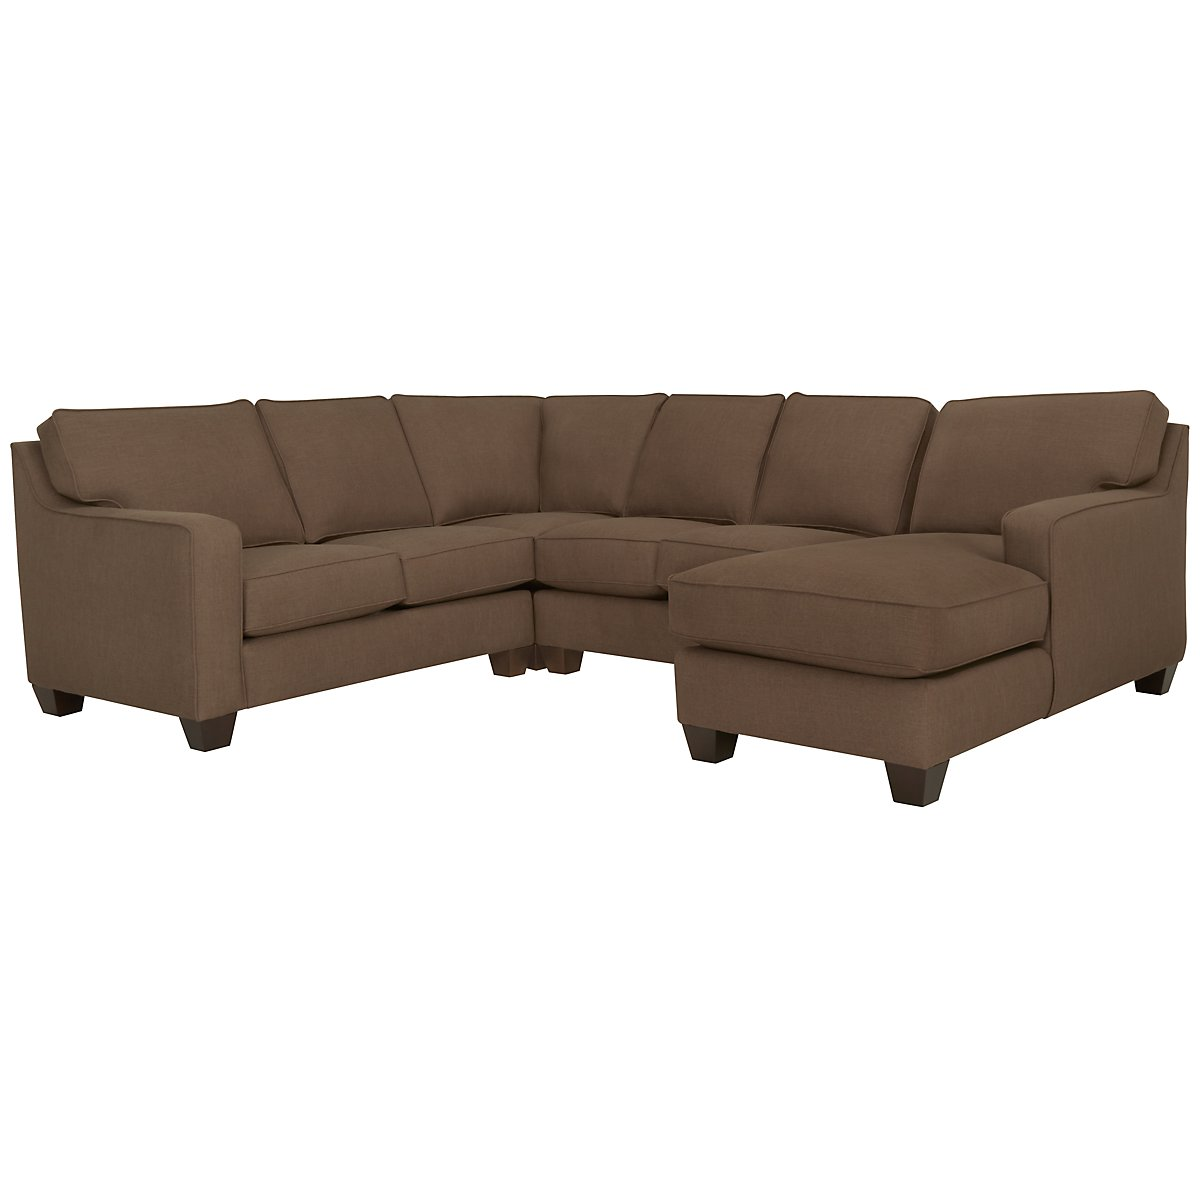 York Dark Brown Fabric Medium Right Chaise Sectional